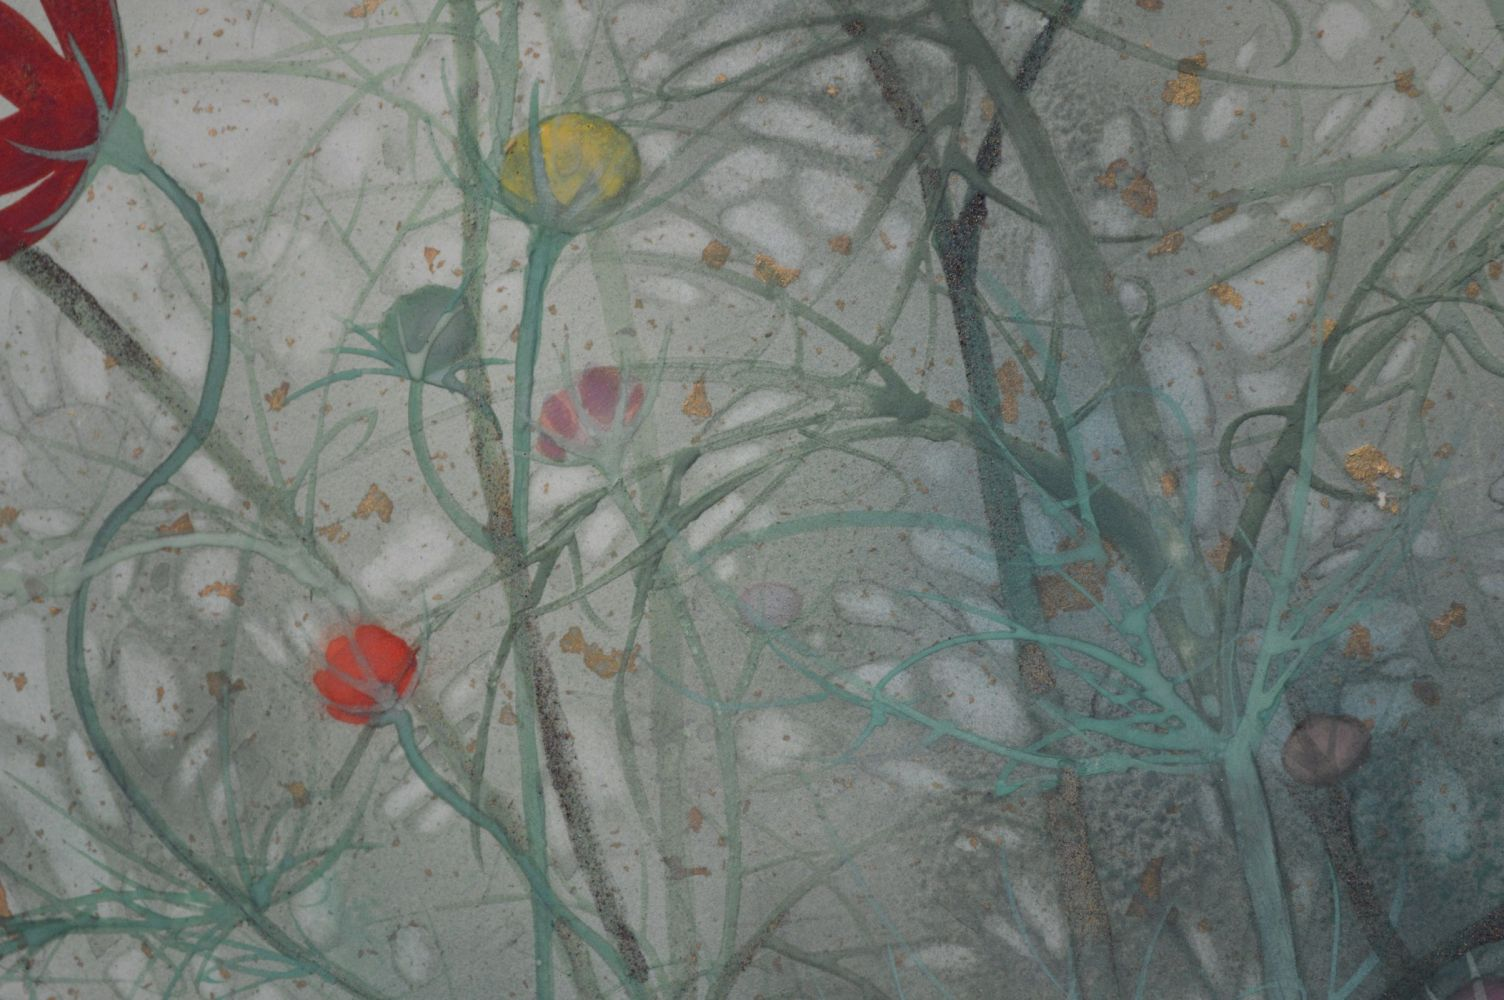 Contemporary painting - Chen Yiching - Ronde - detail 4